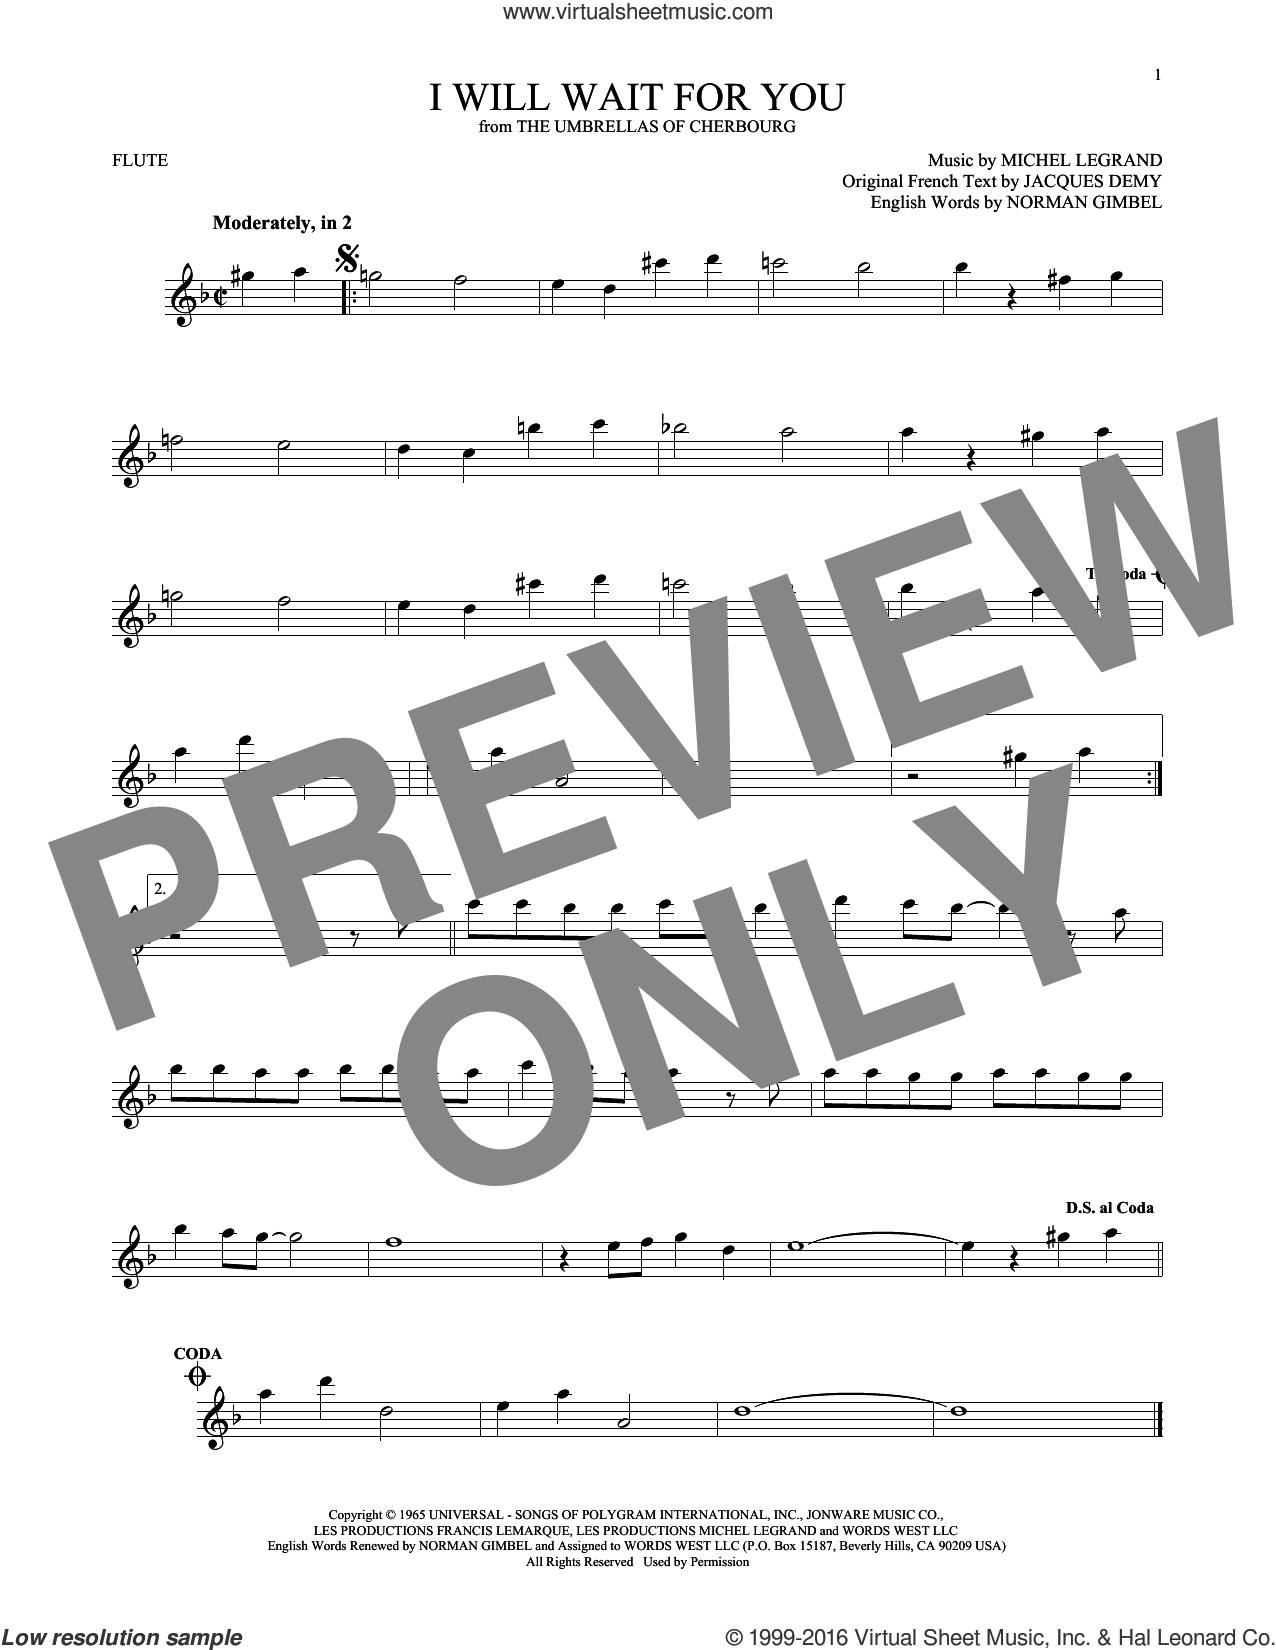 I Will Wait For You sheet music for flute solo by Michel Legrand, Jacques Demy and Norman Gimbel, intermediate skill level